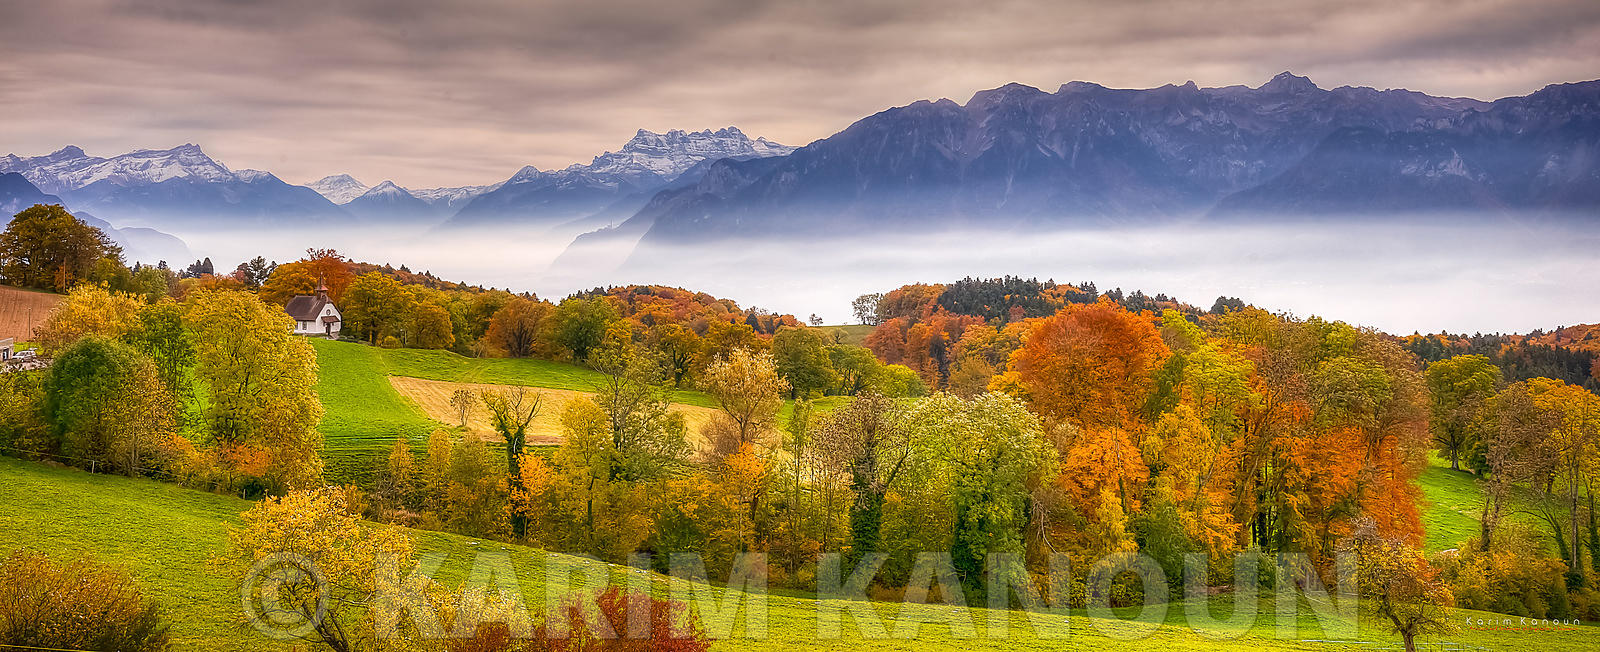 Fresh clear view of Léman Region with autumn colors